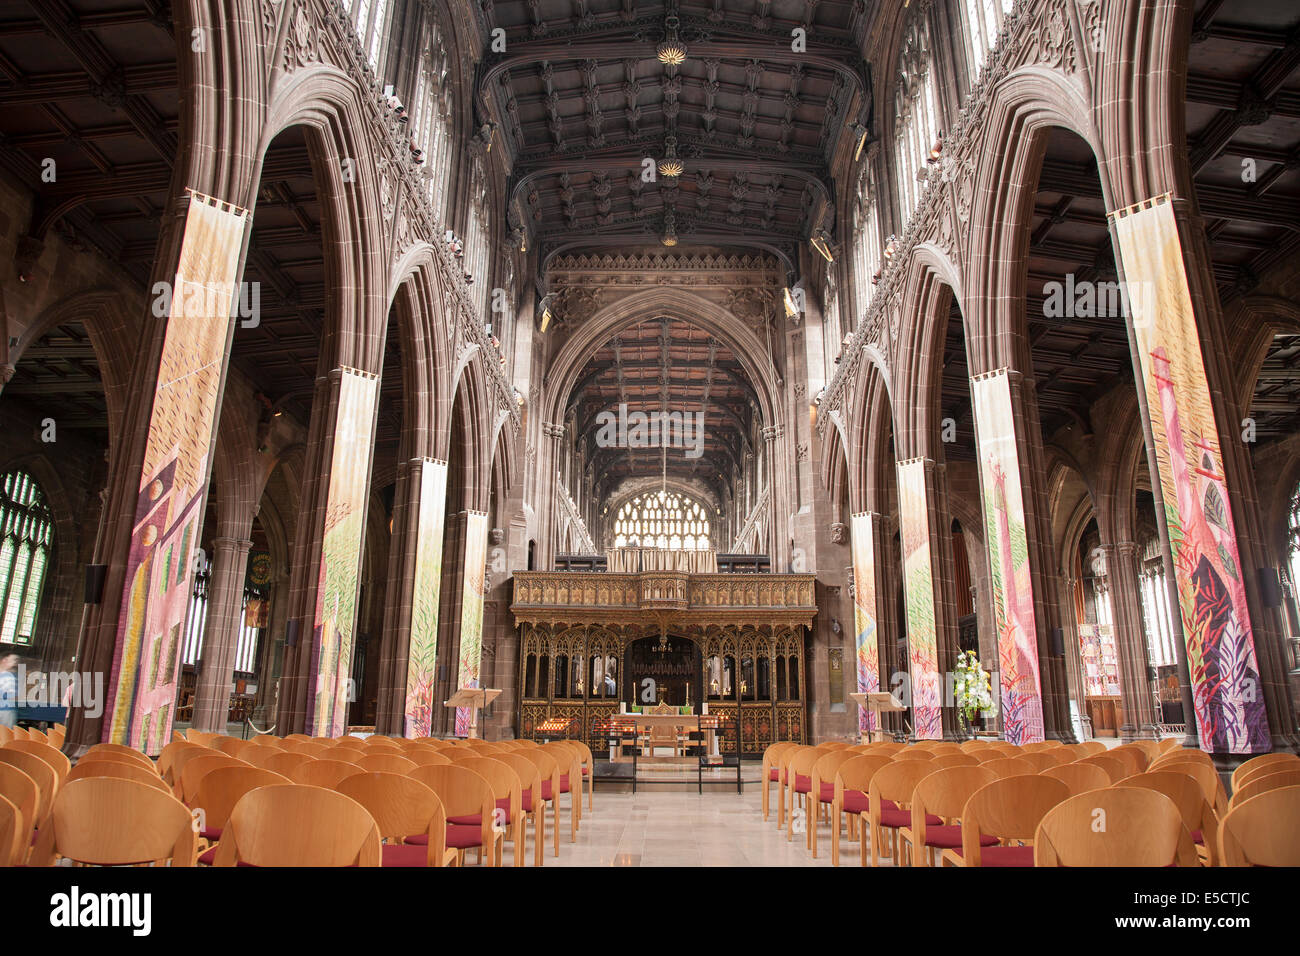 Nave of Manchester Cathedral, England, UK - Stock Image